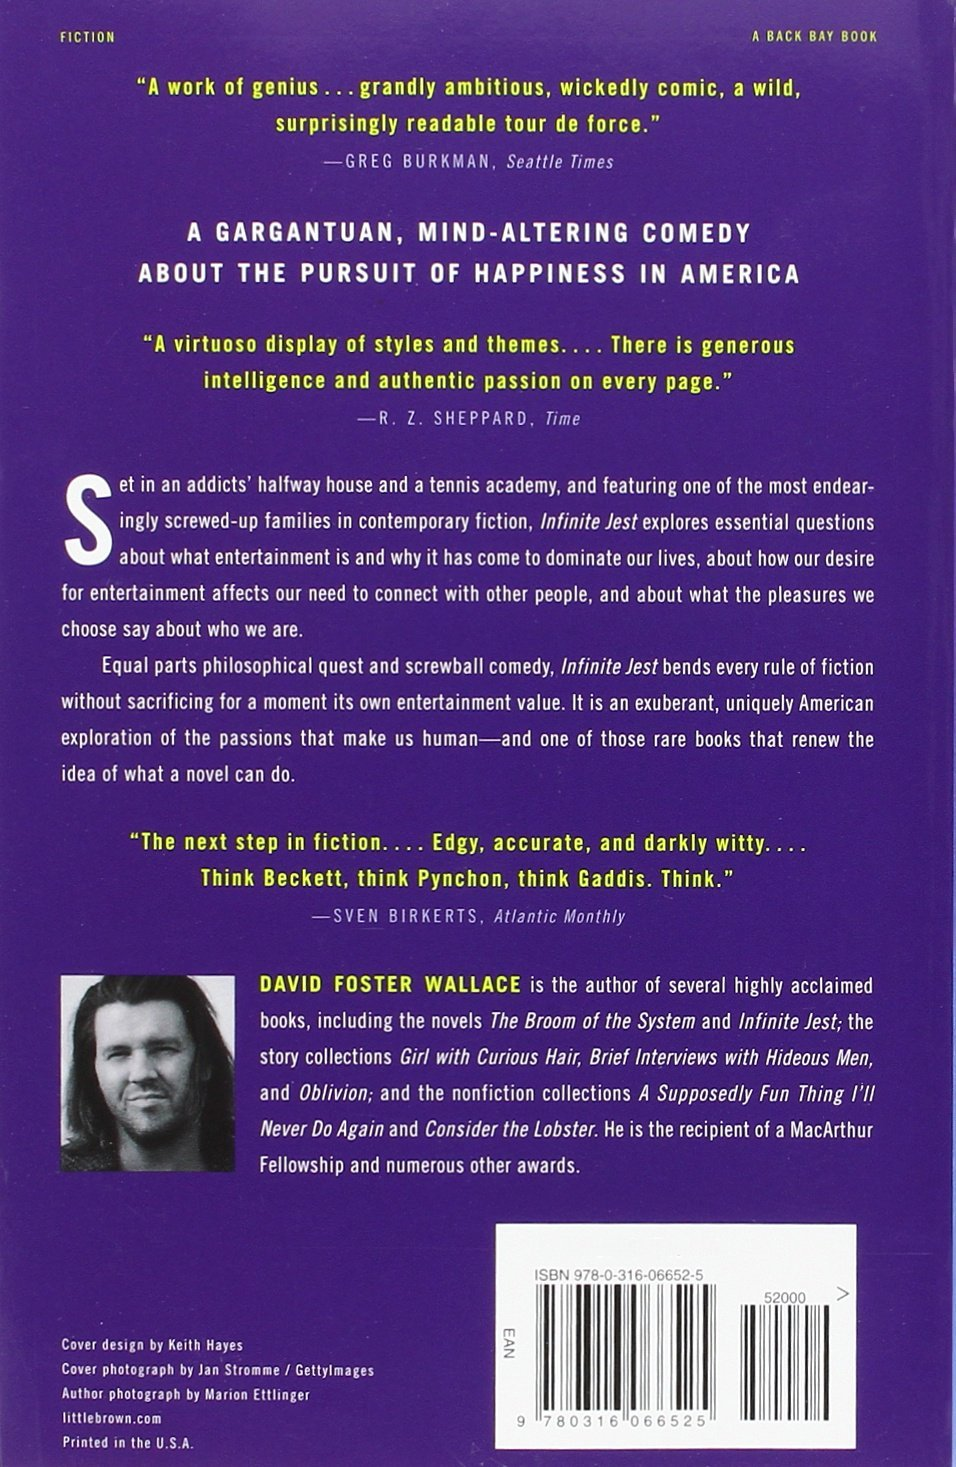 Infinite jest david foster wallace 9780316066525 amazon books fandeluxe Image collections